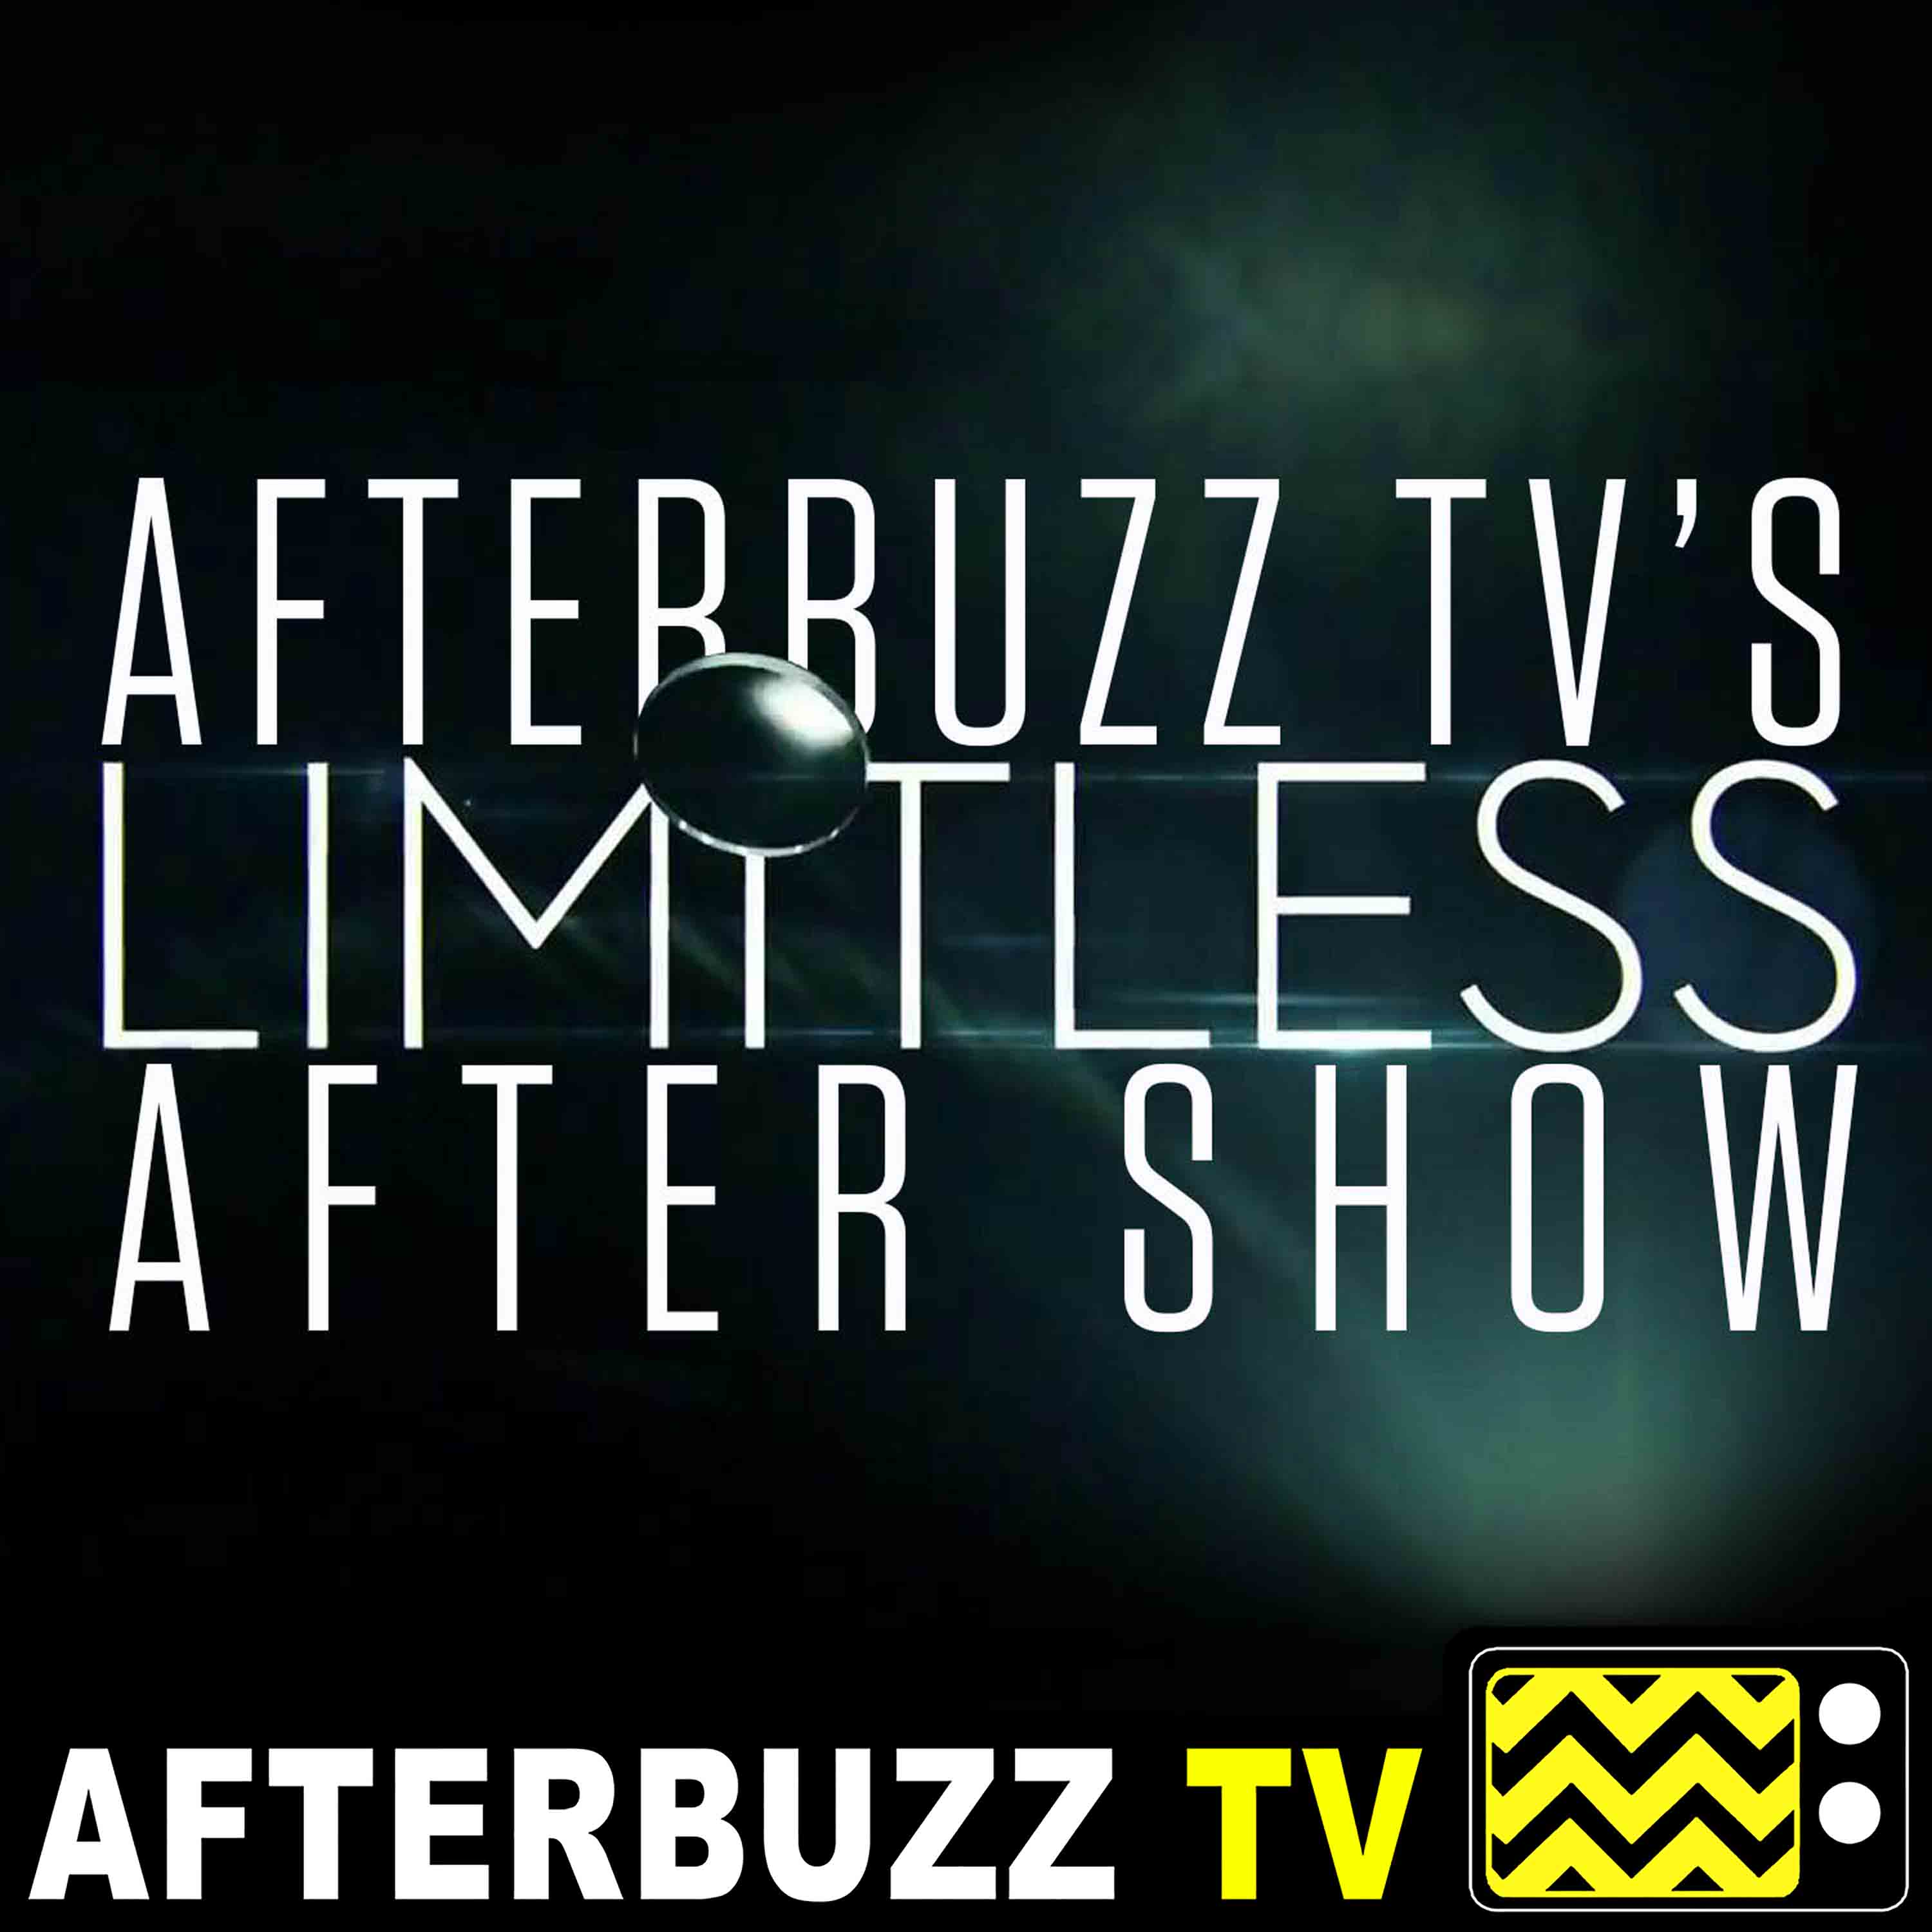 Limitless Reviews and After Show